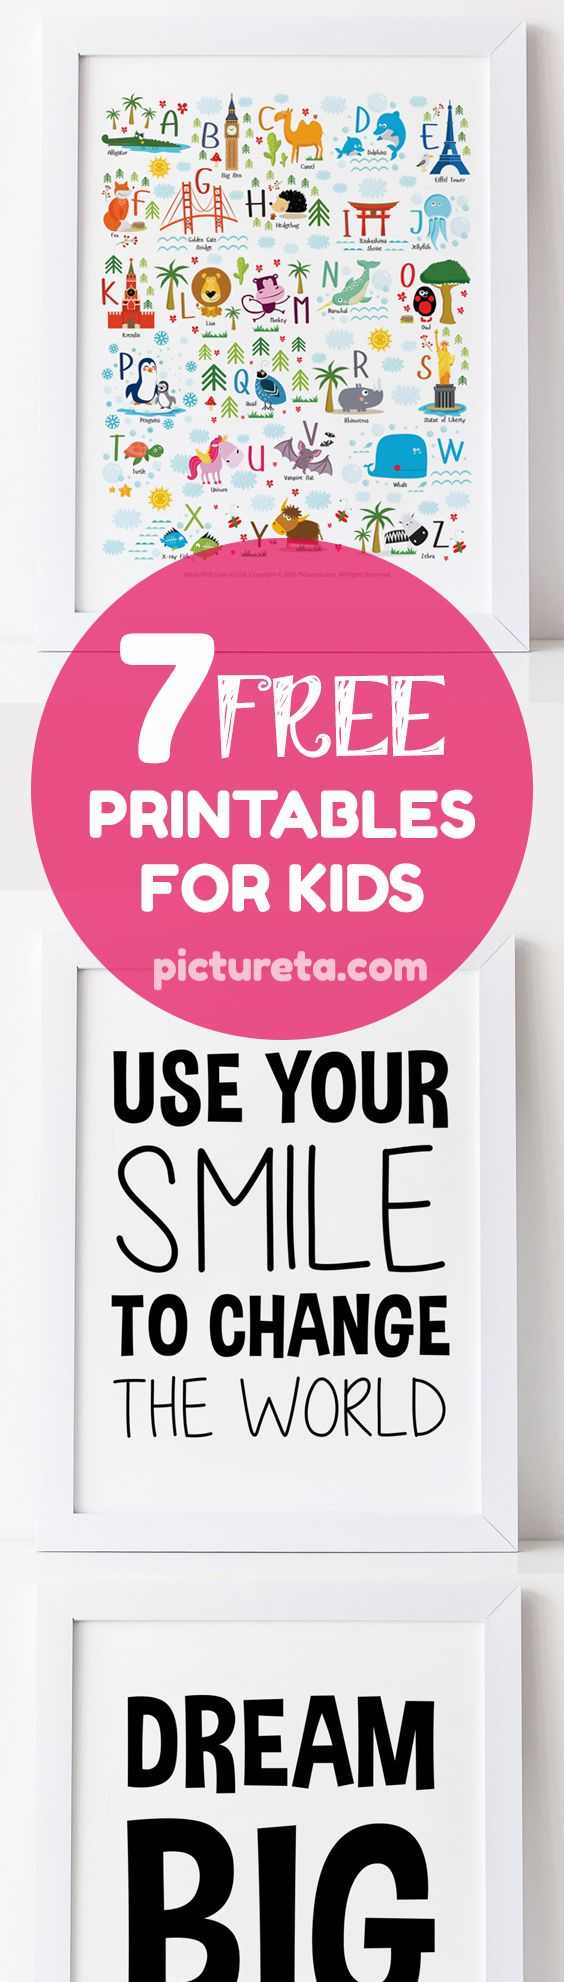 Get modern and inspirational free printables for kids by Pictureta. Inspirational quotes for kids. Unique nursery décor, alphabet poster, English alphabet, free nursery art printables, free playroom printables, quotes for kids, dream big little one